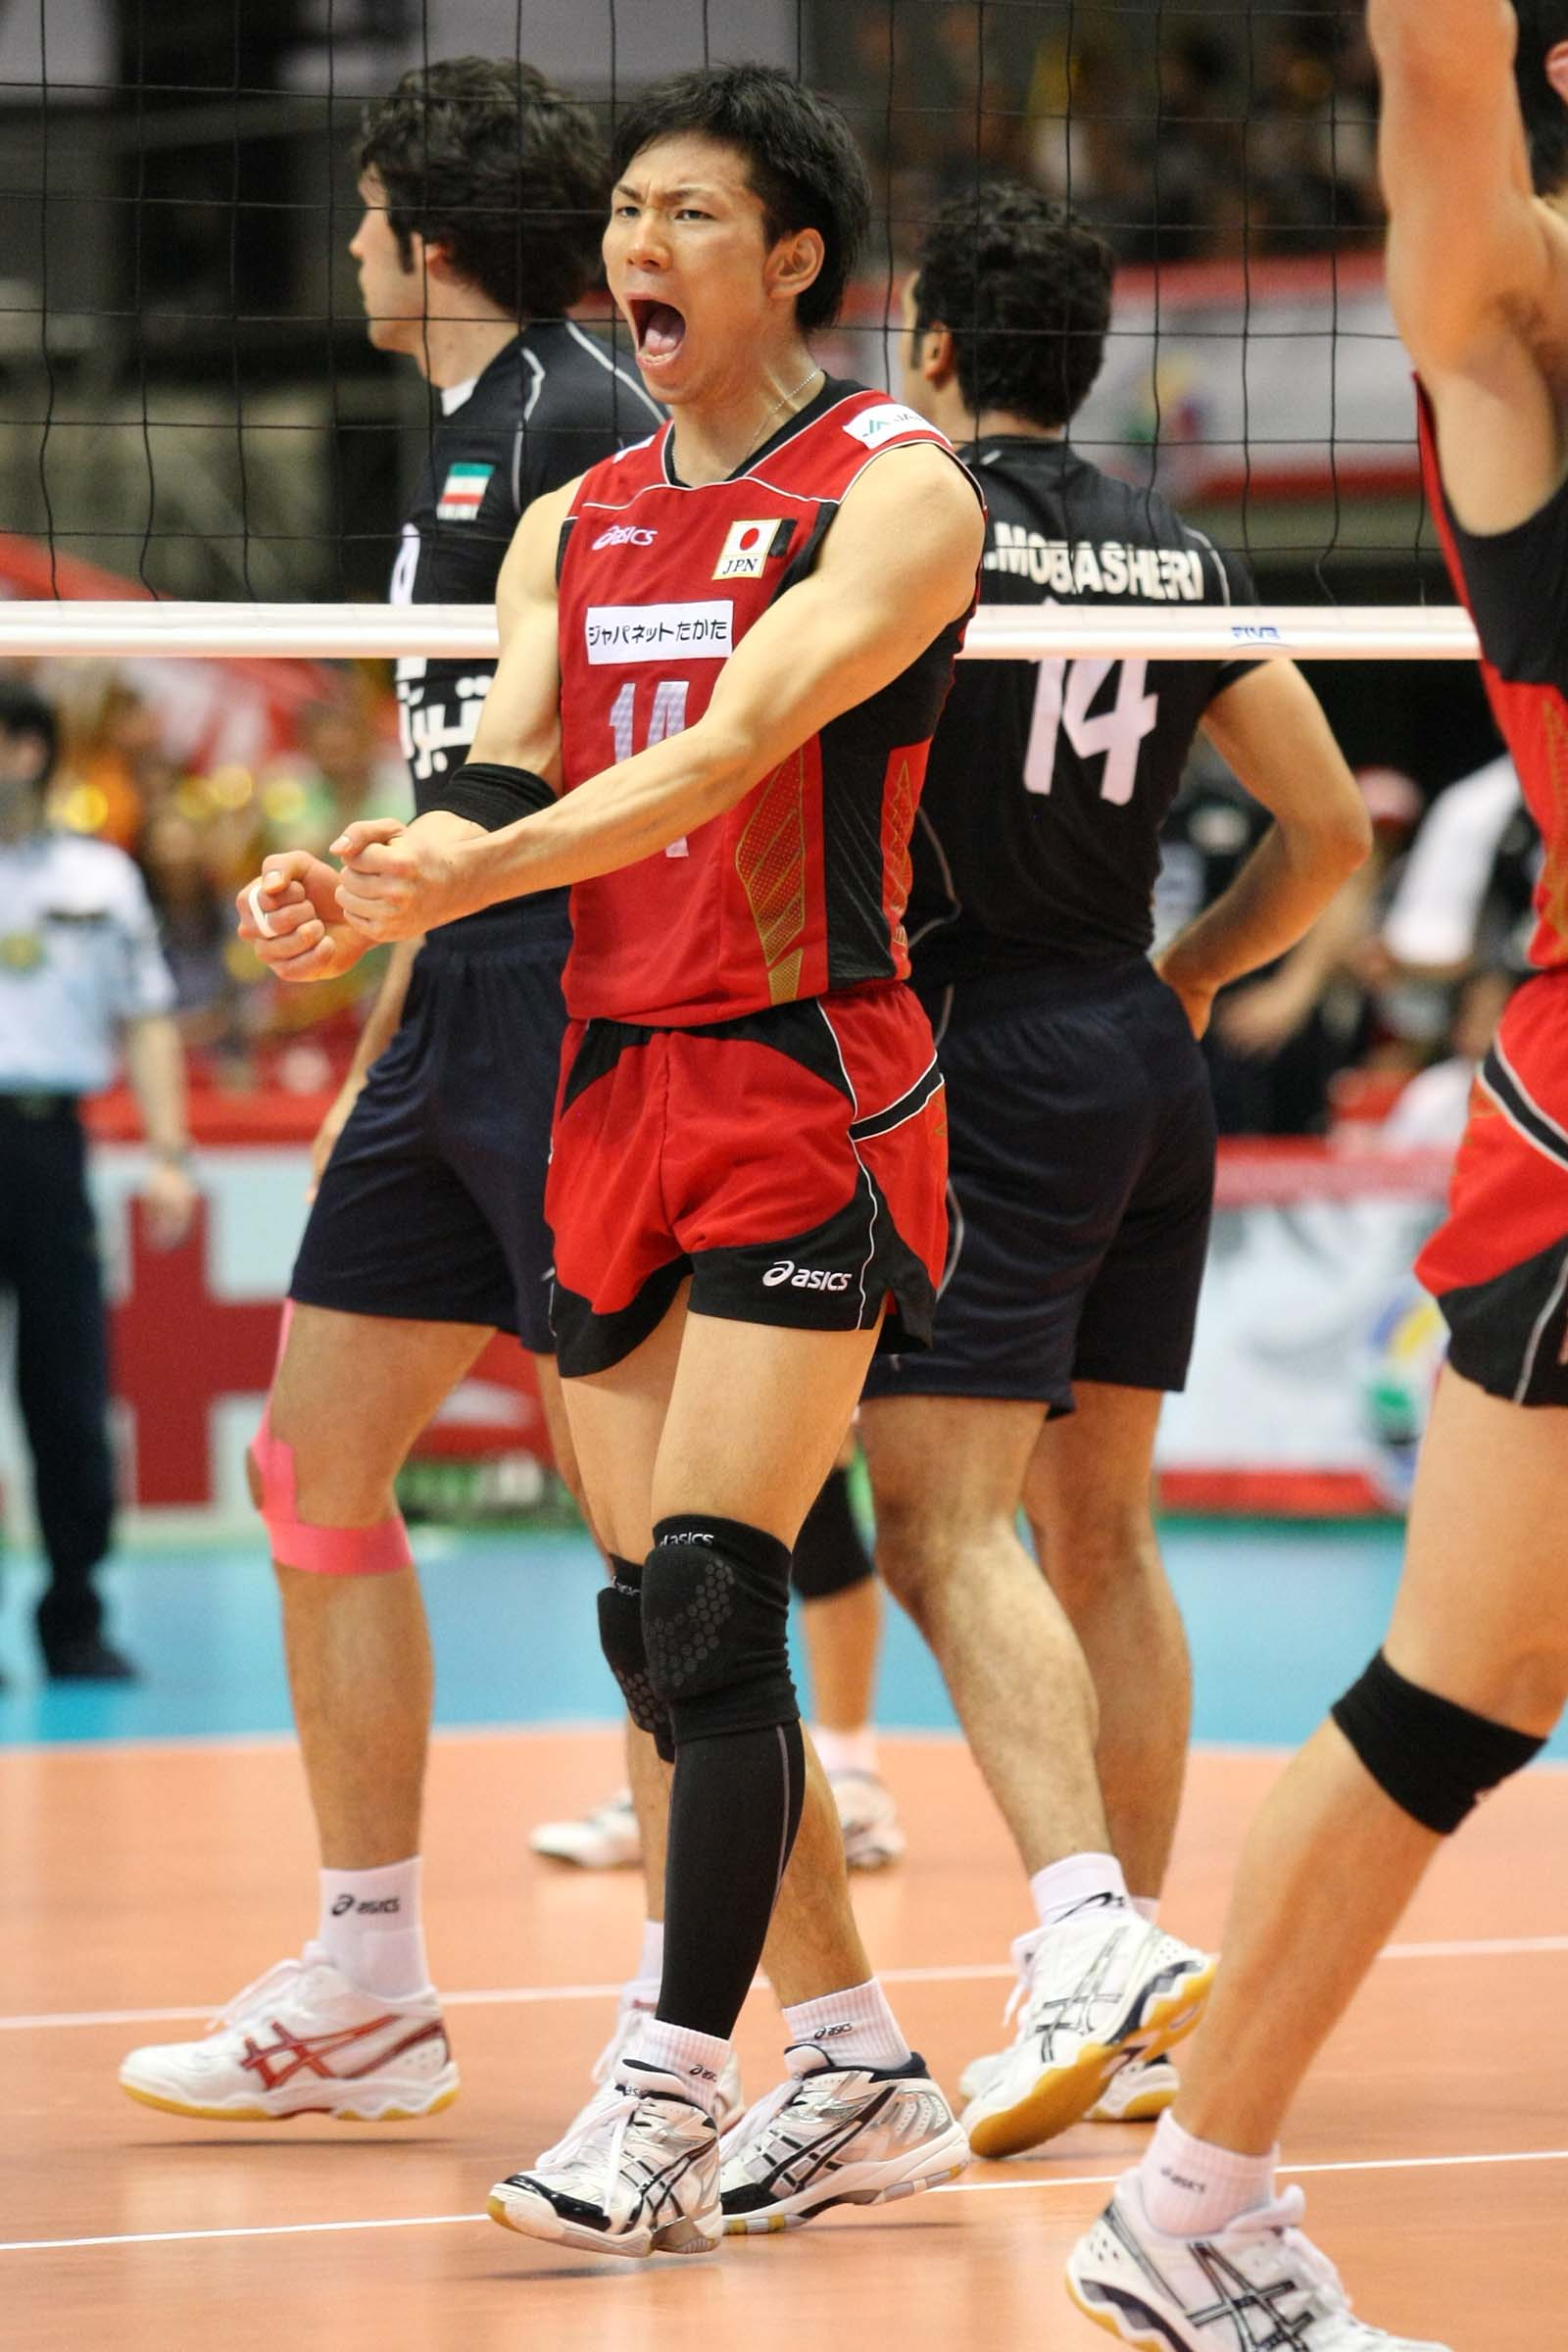 japan mens volleyball team Japan 2013 Team Rosters